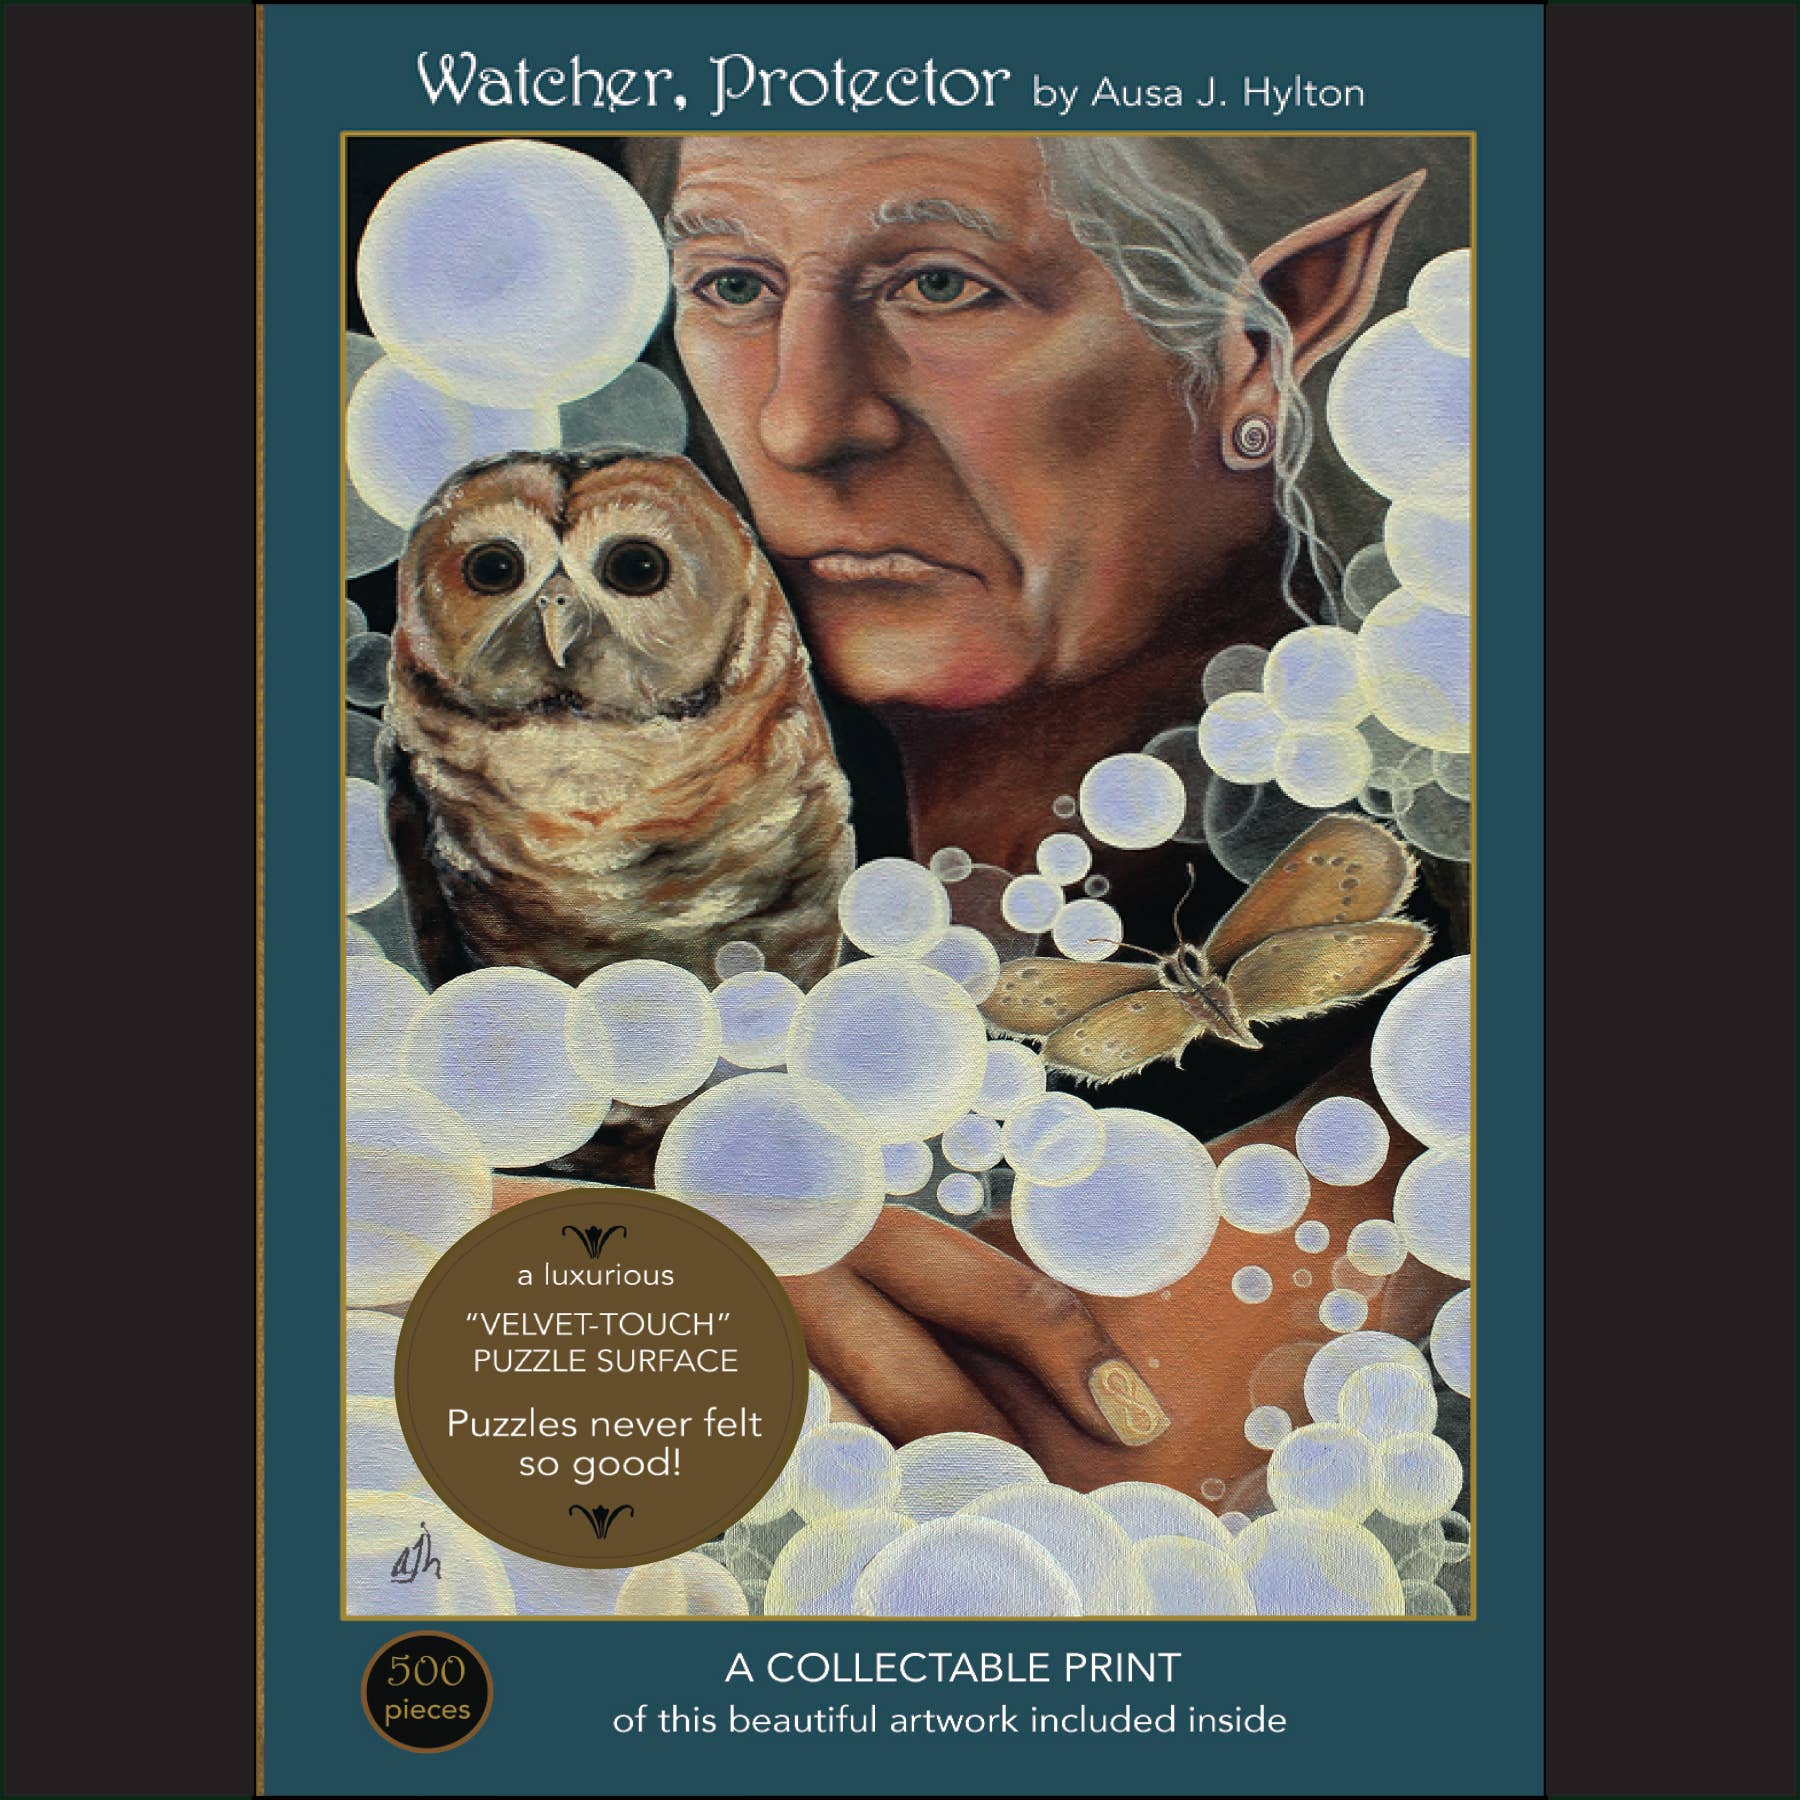 """Watcher, Protector; 500-Piece """"Velvet-Touch"""" Jigsaw Puzzle 